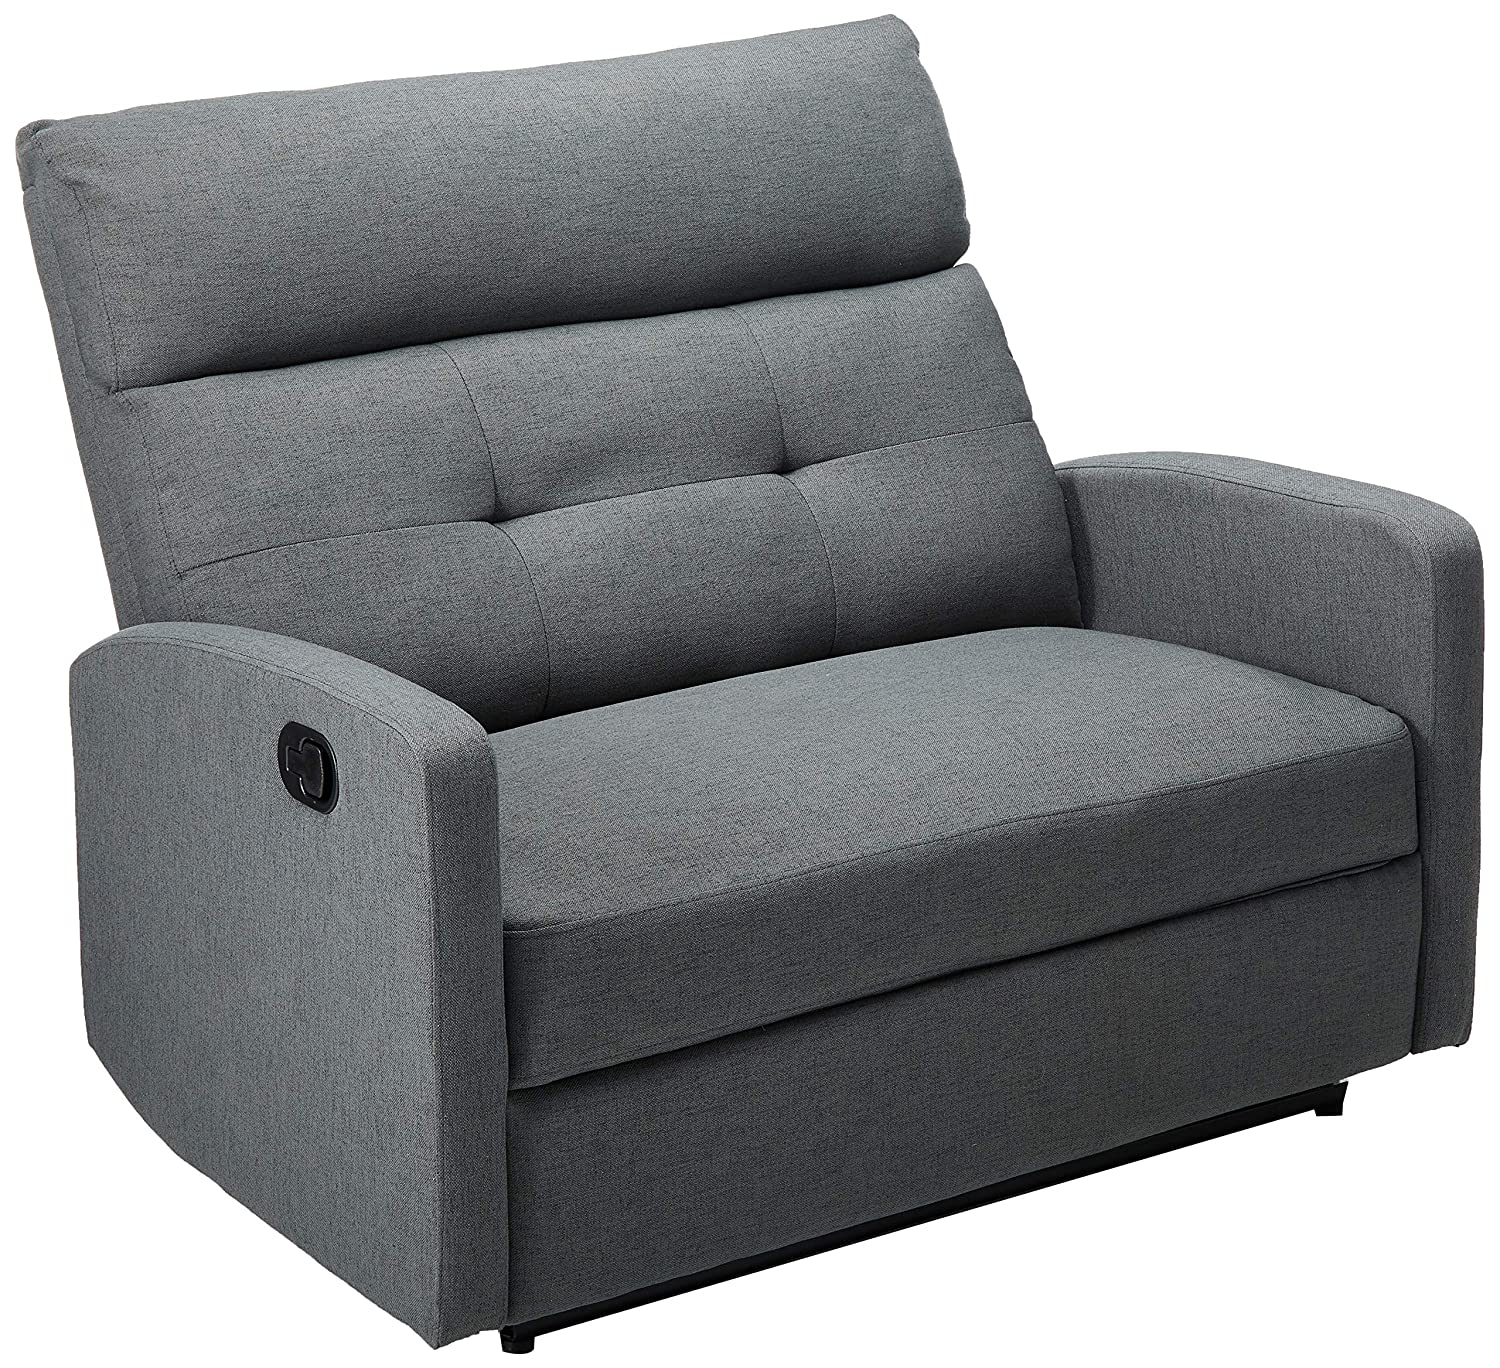 Remarkable Christopher Knight Home Hana Recliner Fabric Charcoal Cjindustries Chair Design For Home Cjindustriesco